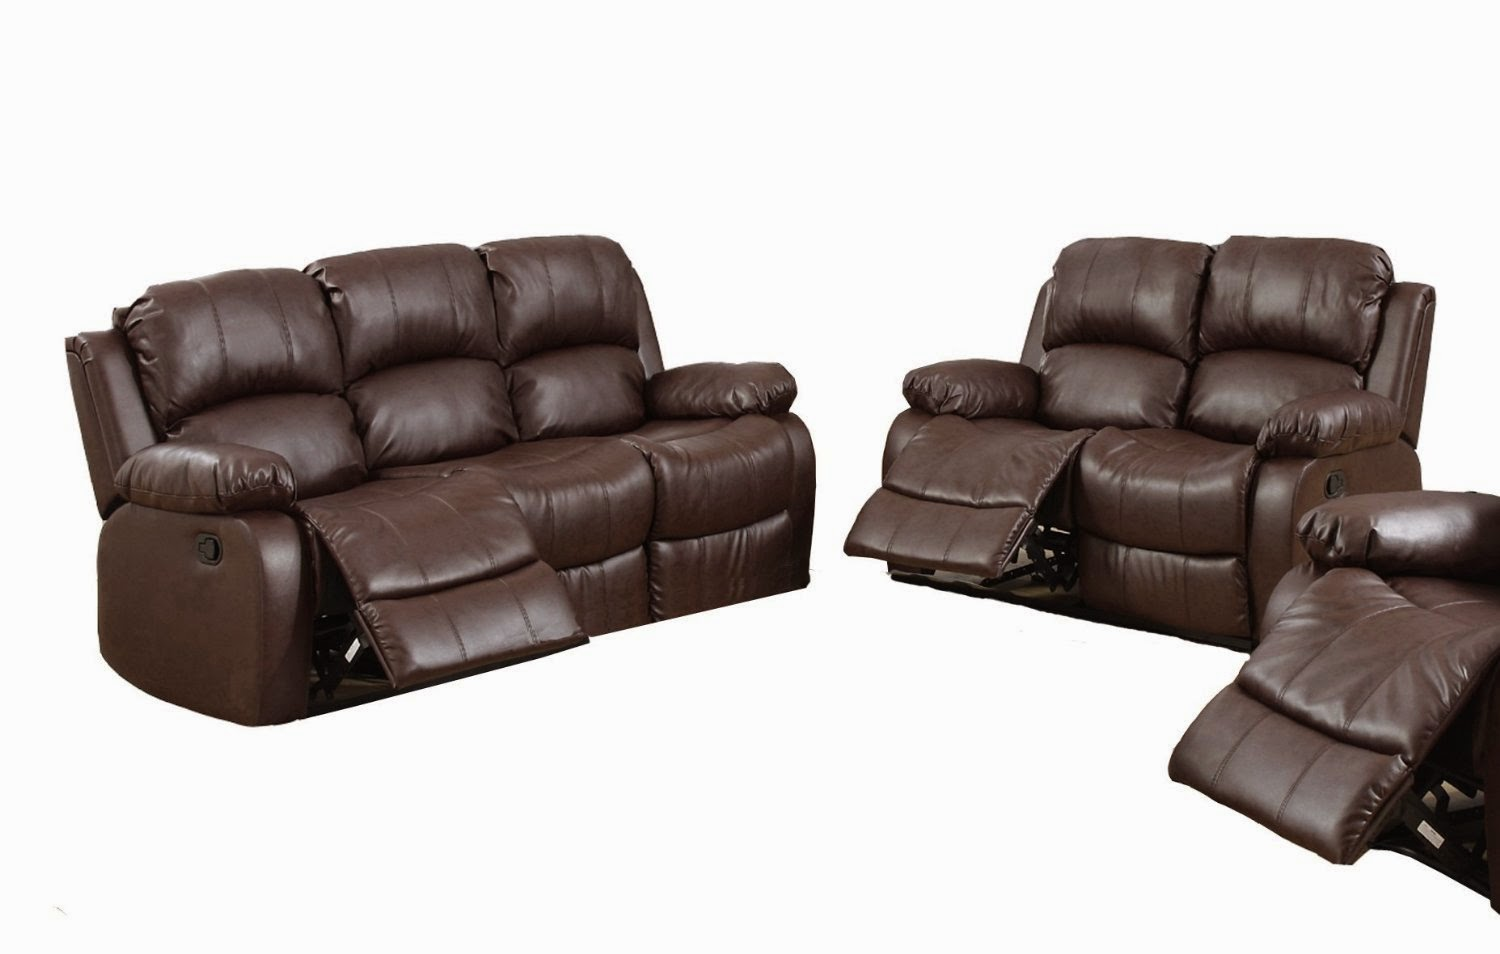 Cheap reclining sofa and loveseat sets april 2015 for Inexpensive couch sets